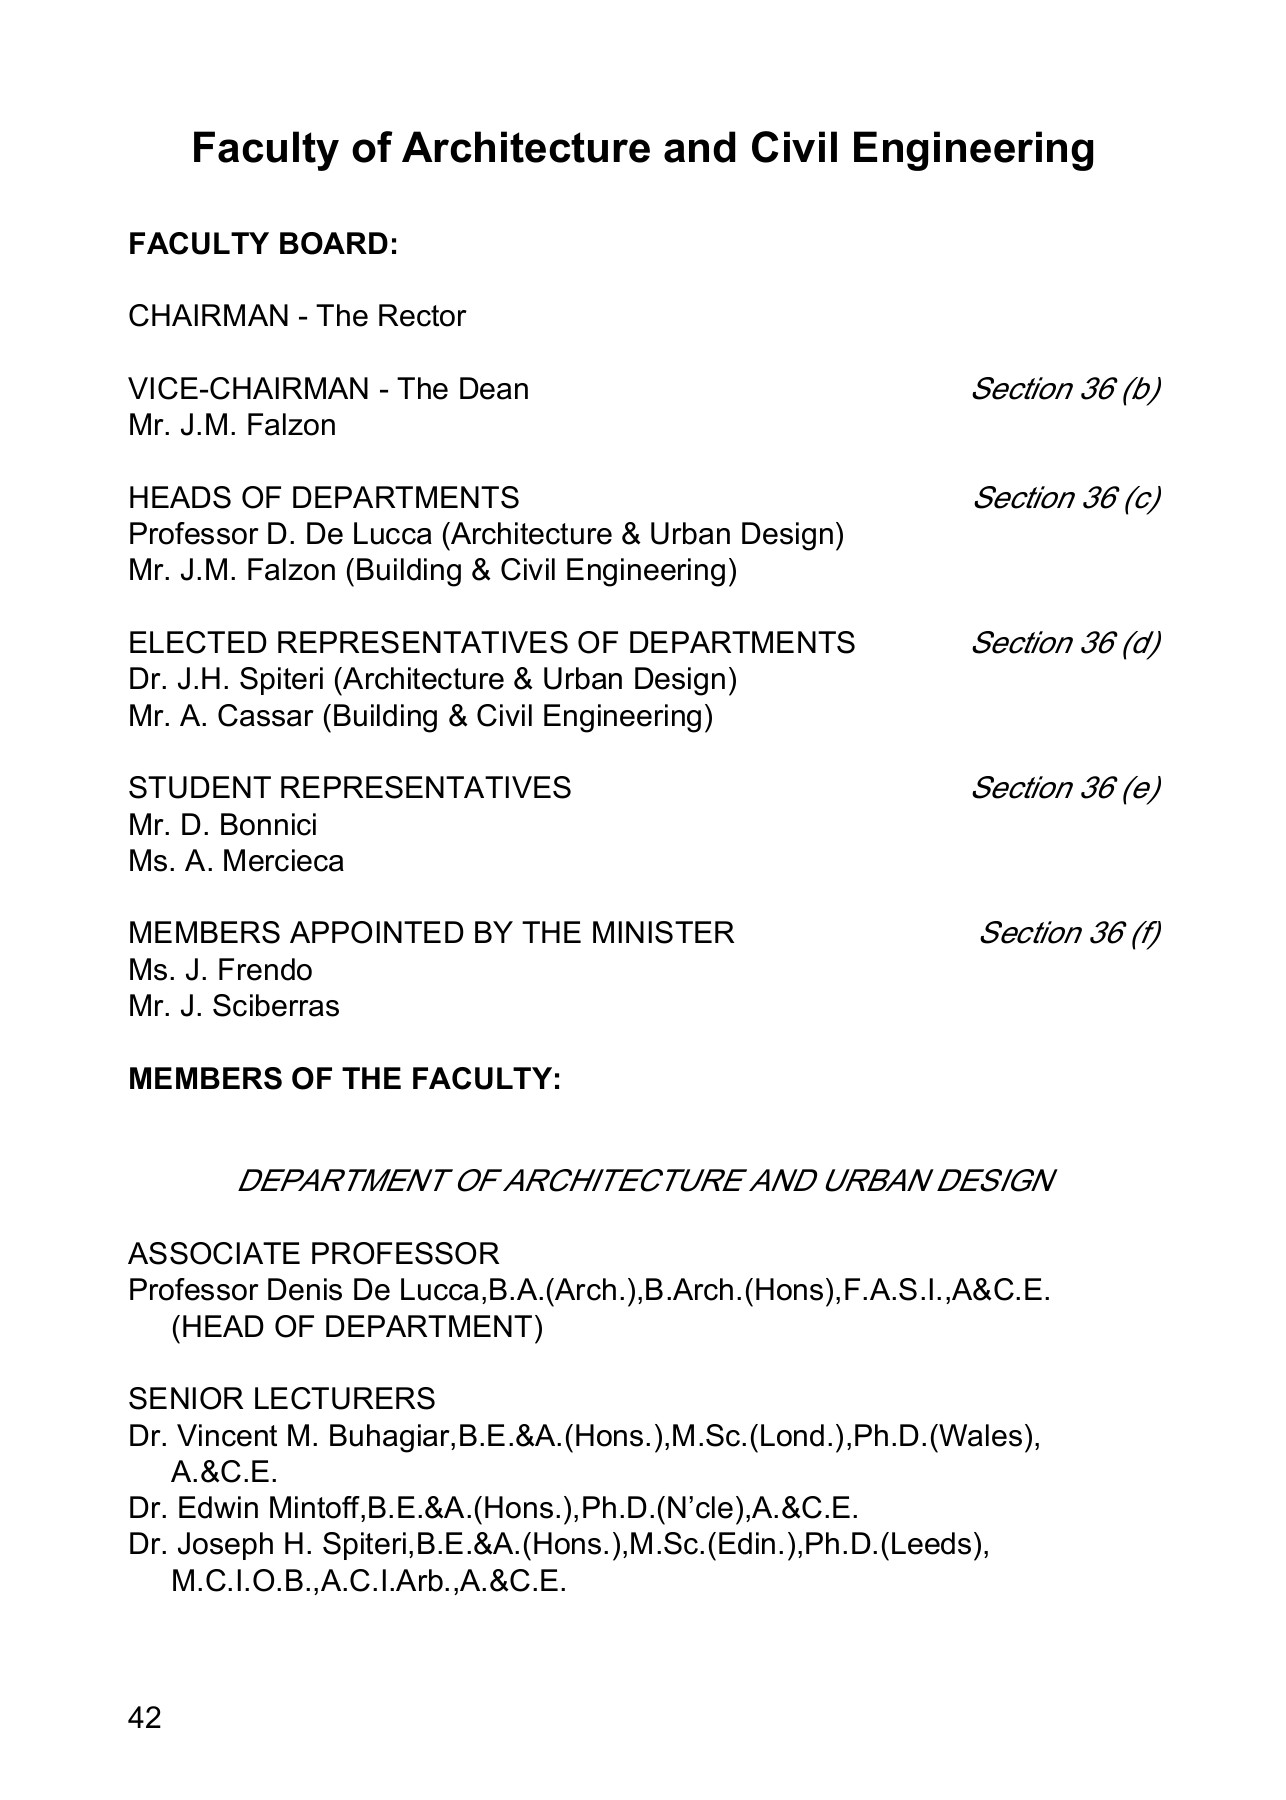 2 - FACULTIES - University of Malta Pages 1 - 50 - Text Version